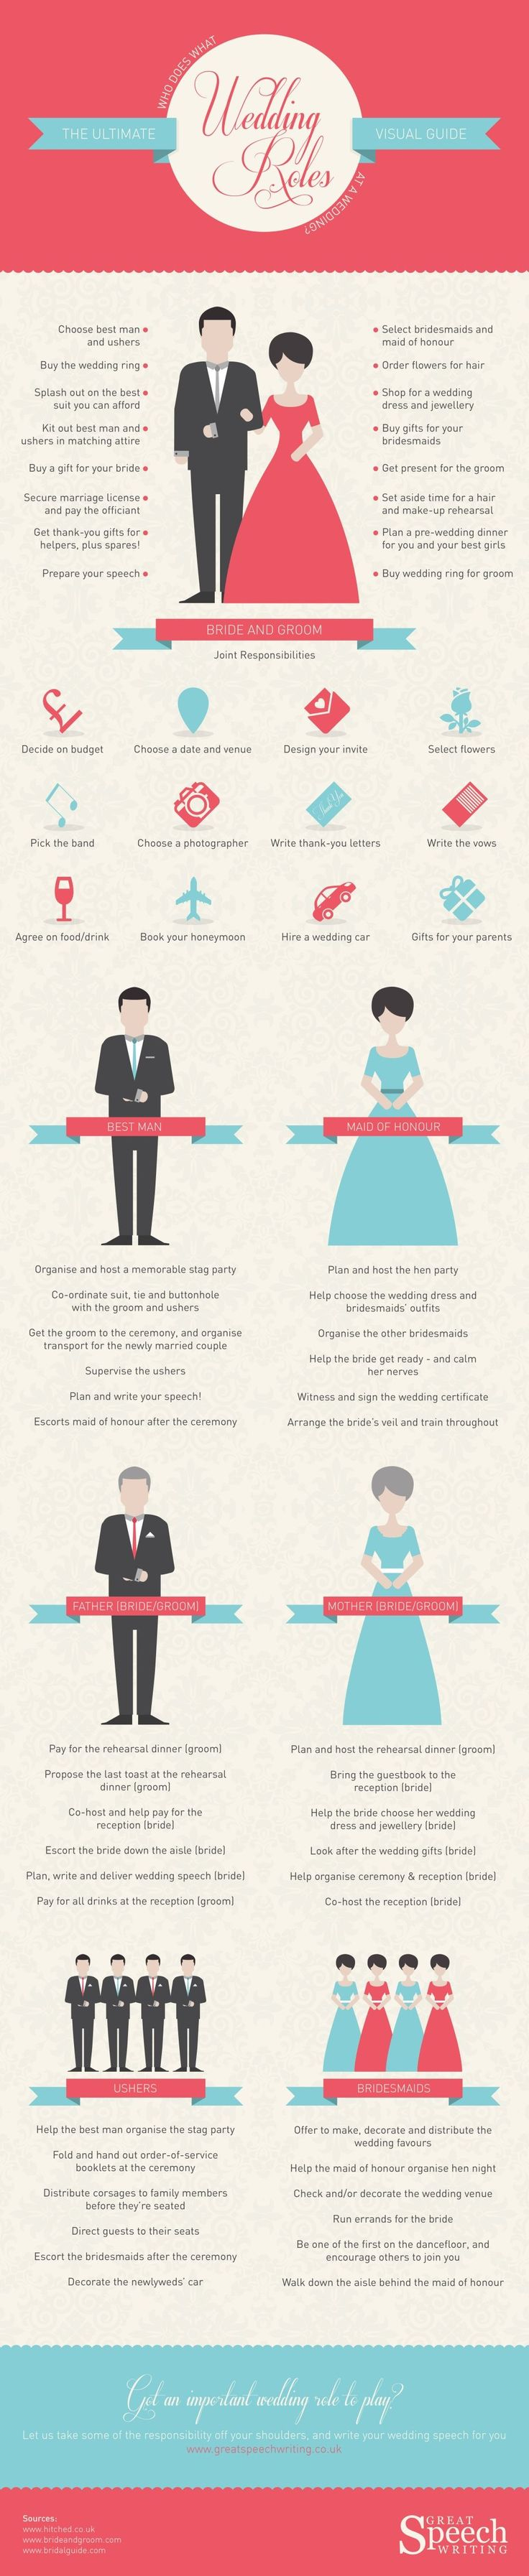 Pop Quiz: Whose Job is it to help the bride pick her wedding jewelry? Find out with this Ultimate Wedding Roles Visual Guide!